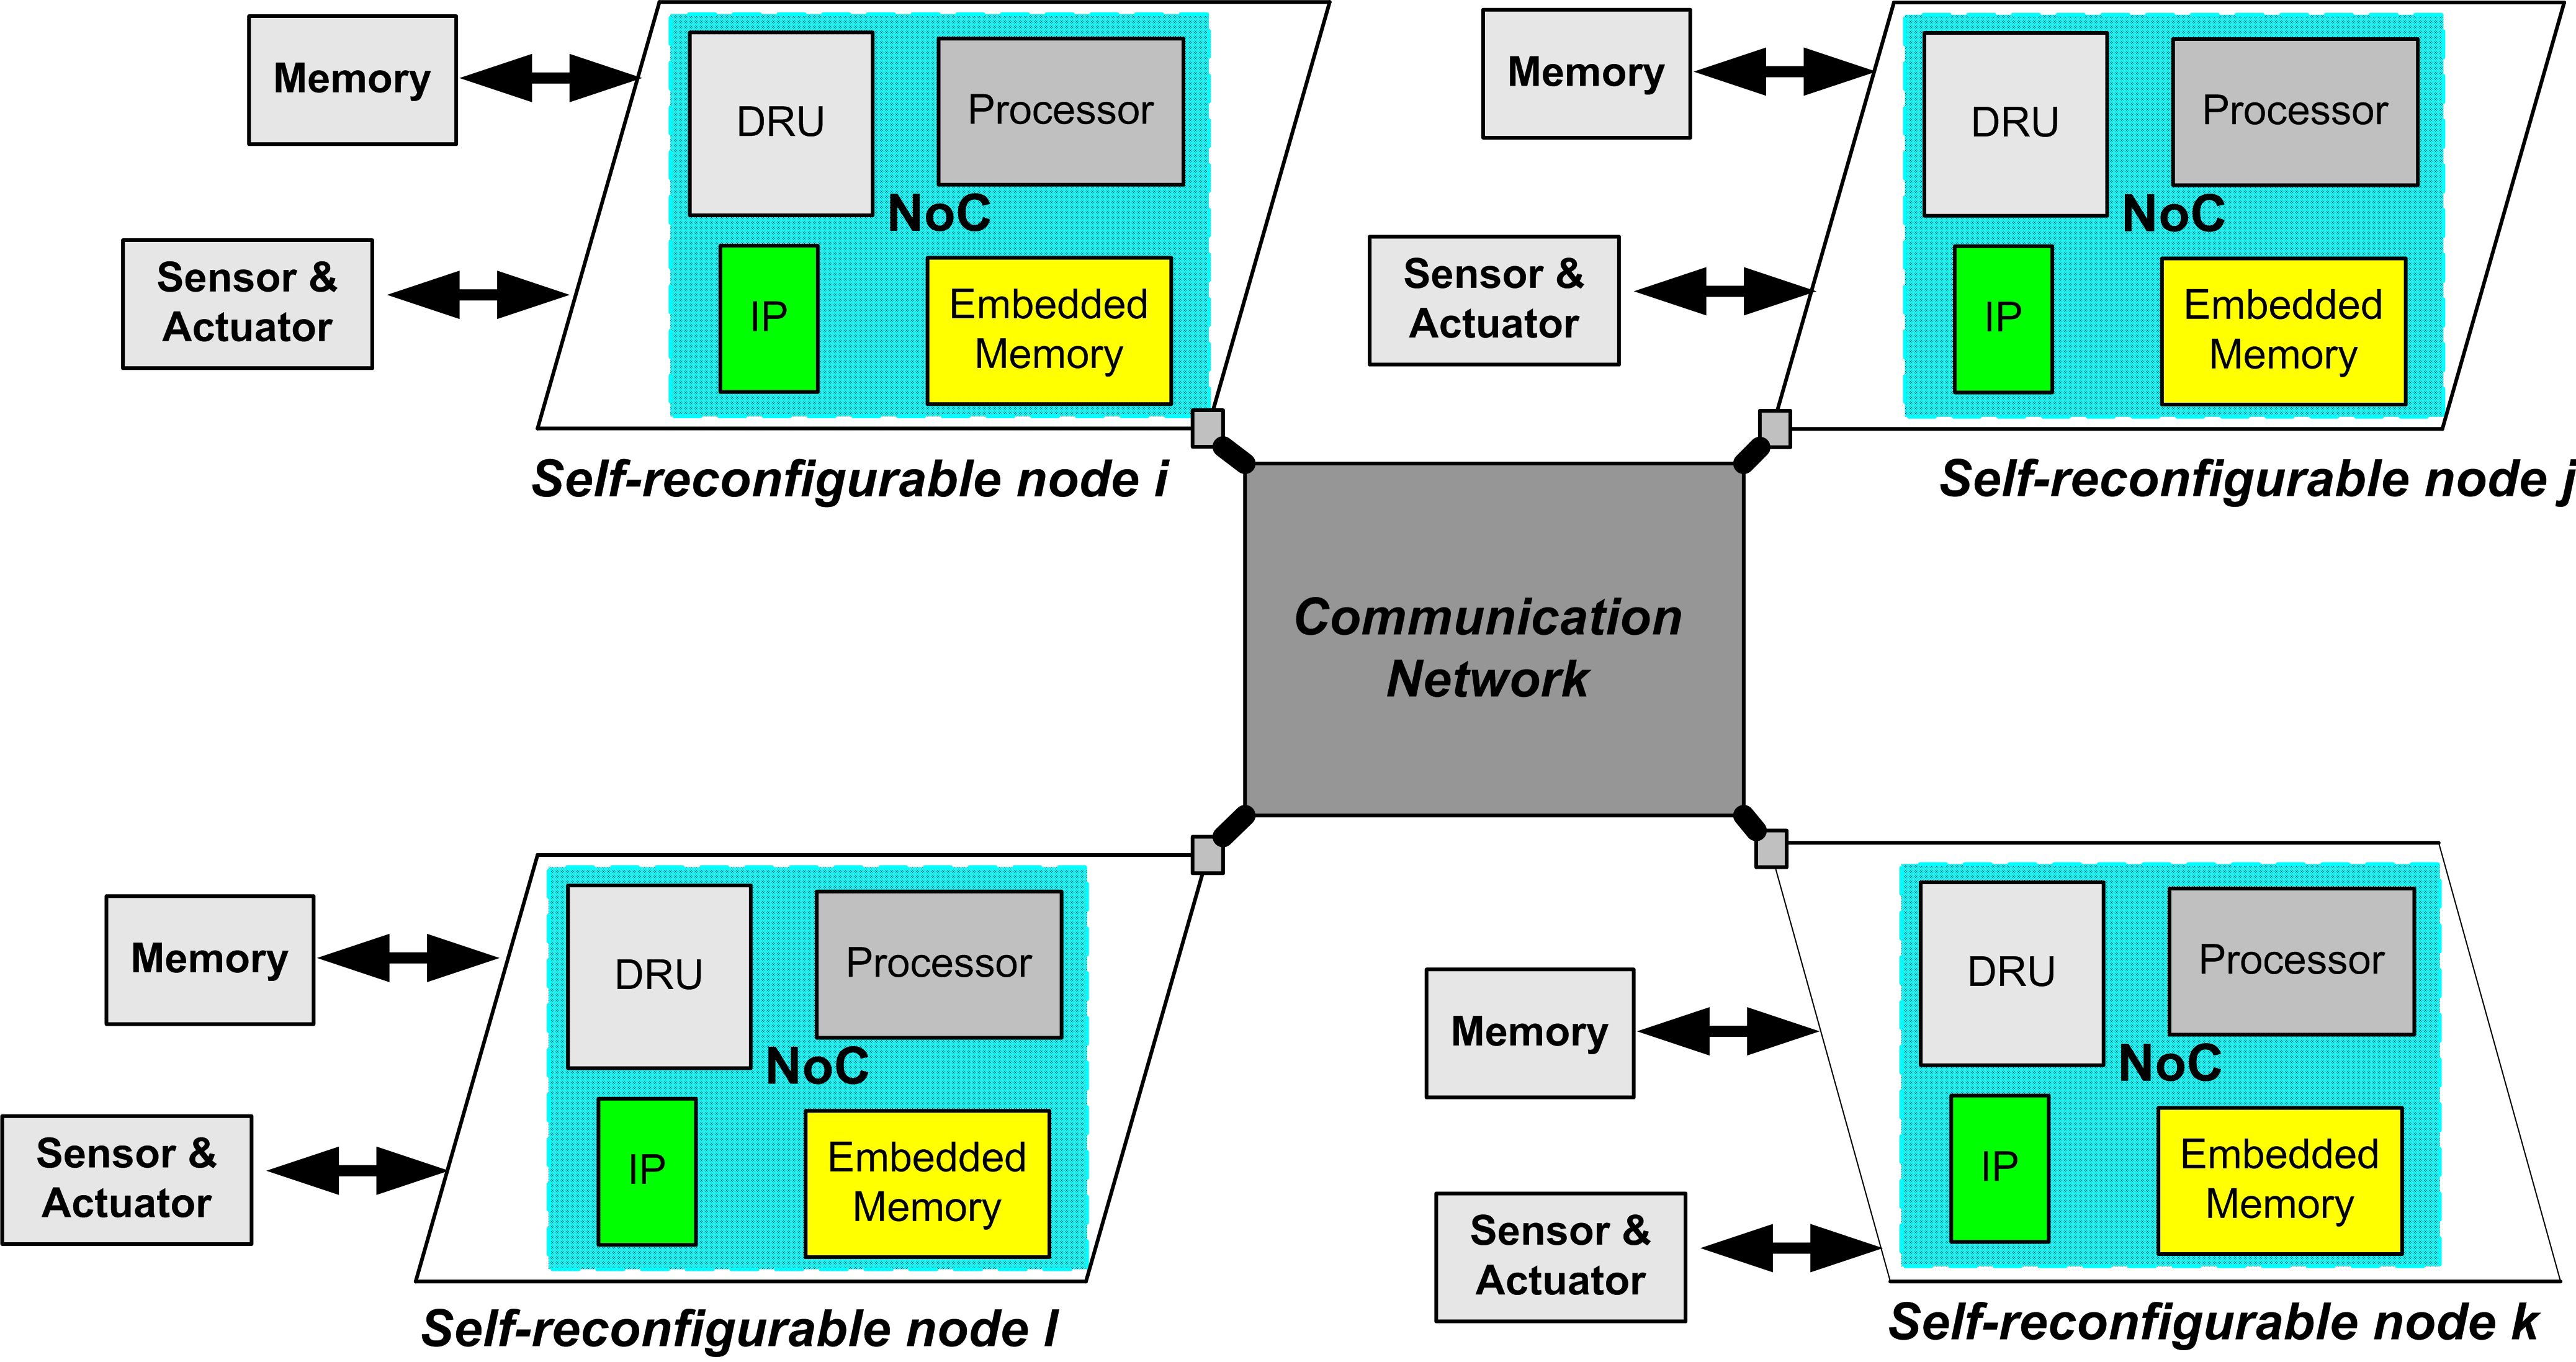 Chapter 3 Proposed Concept Figure 3.7: Architecture of the networked Self-reconfigurable nodes.